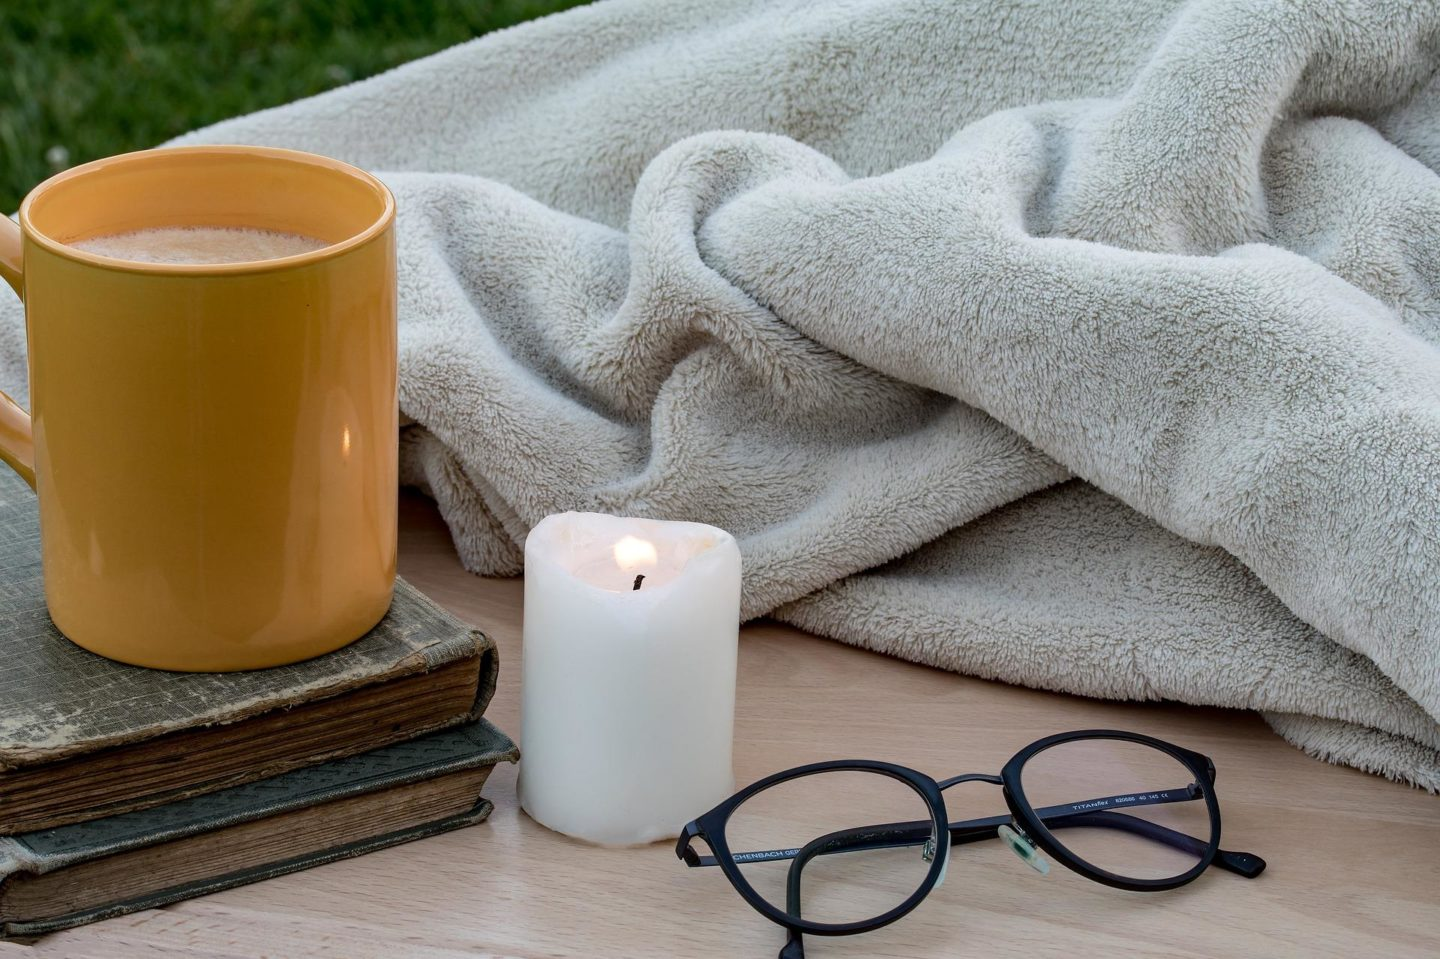 Home Updates to Make in Time for Autumn - Rachel Nicole Blogger